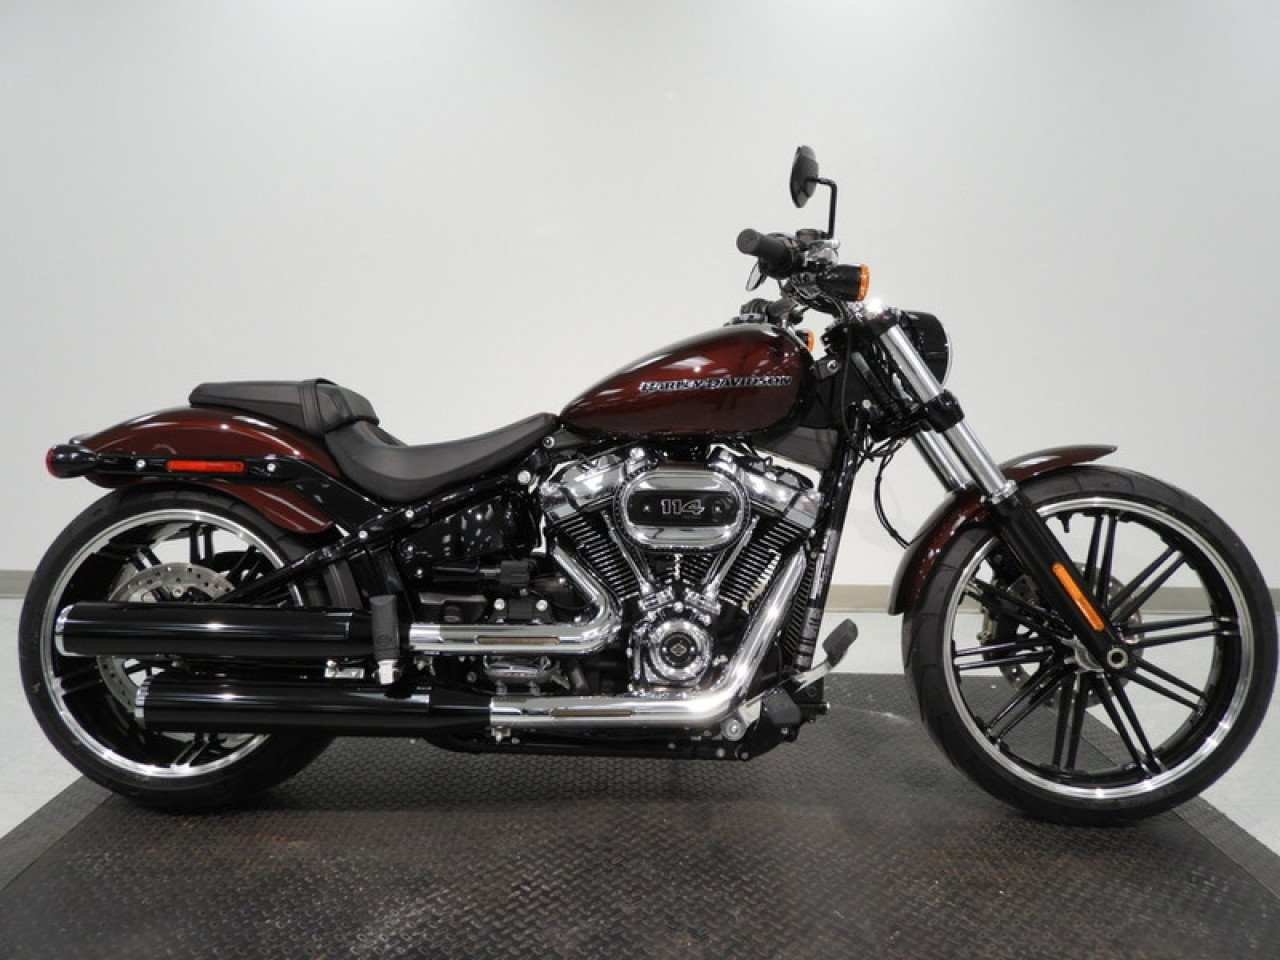 New Harley Davidson Softail Motorcycles For Sale Texas >> 2018 Harley-Davidson Softail Breakout for sale near Garland, Texas 75041 - Motorcycles on Autotrader